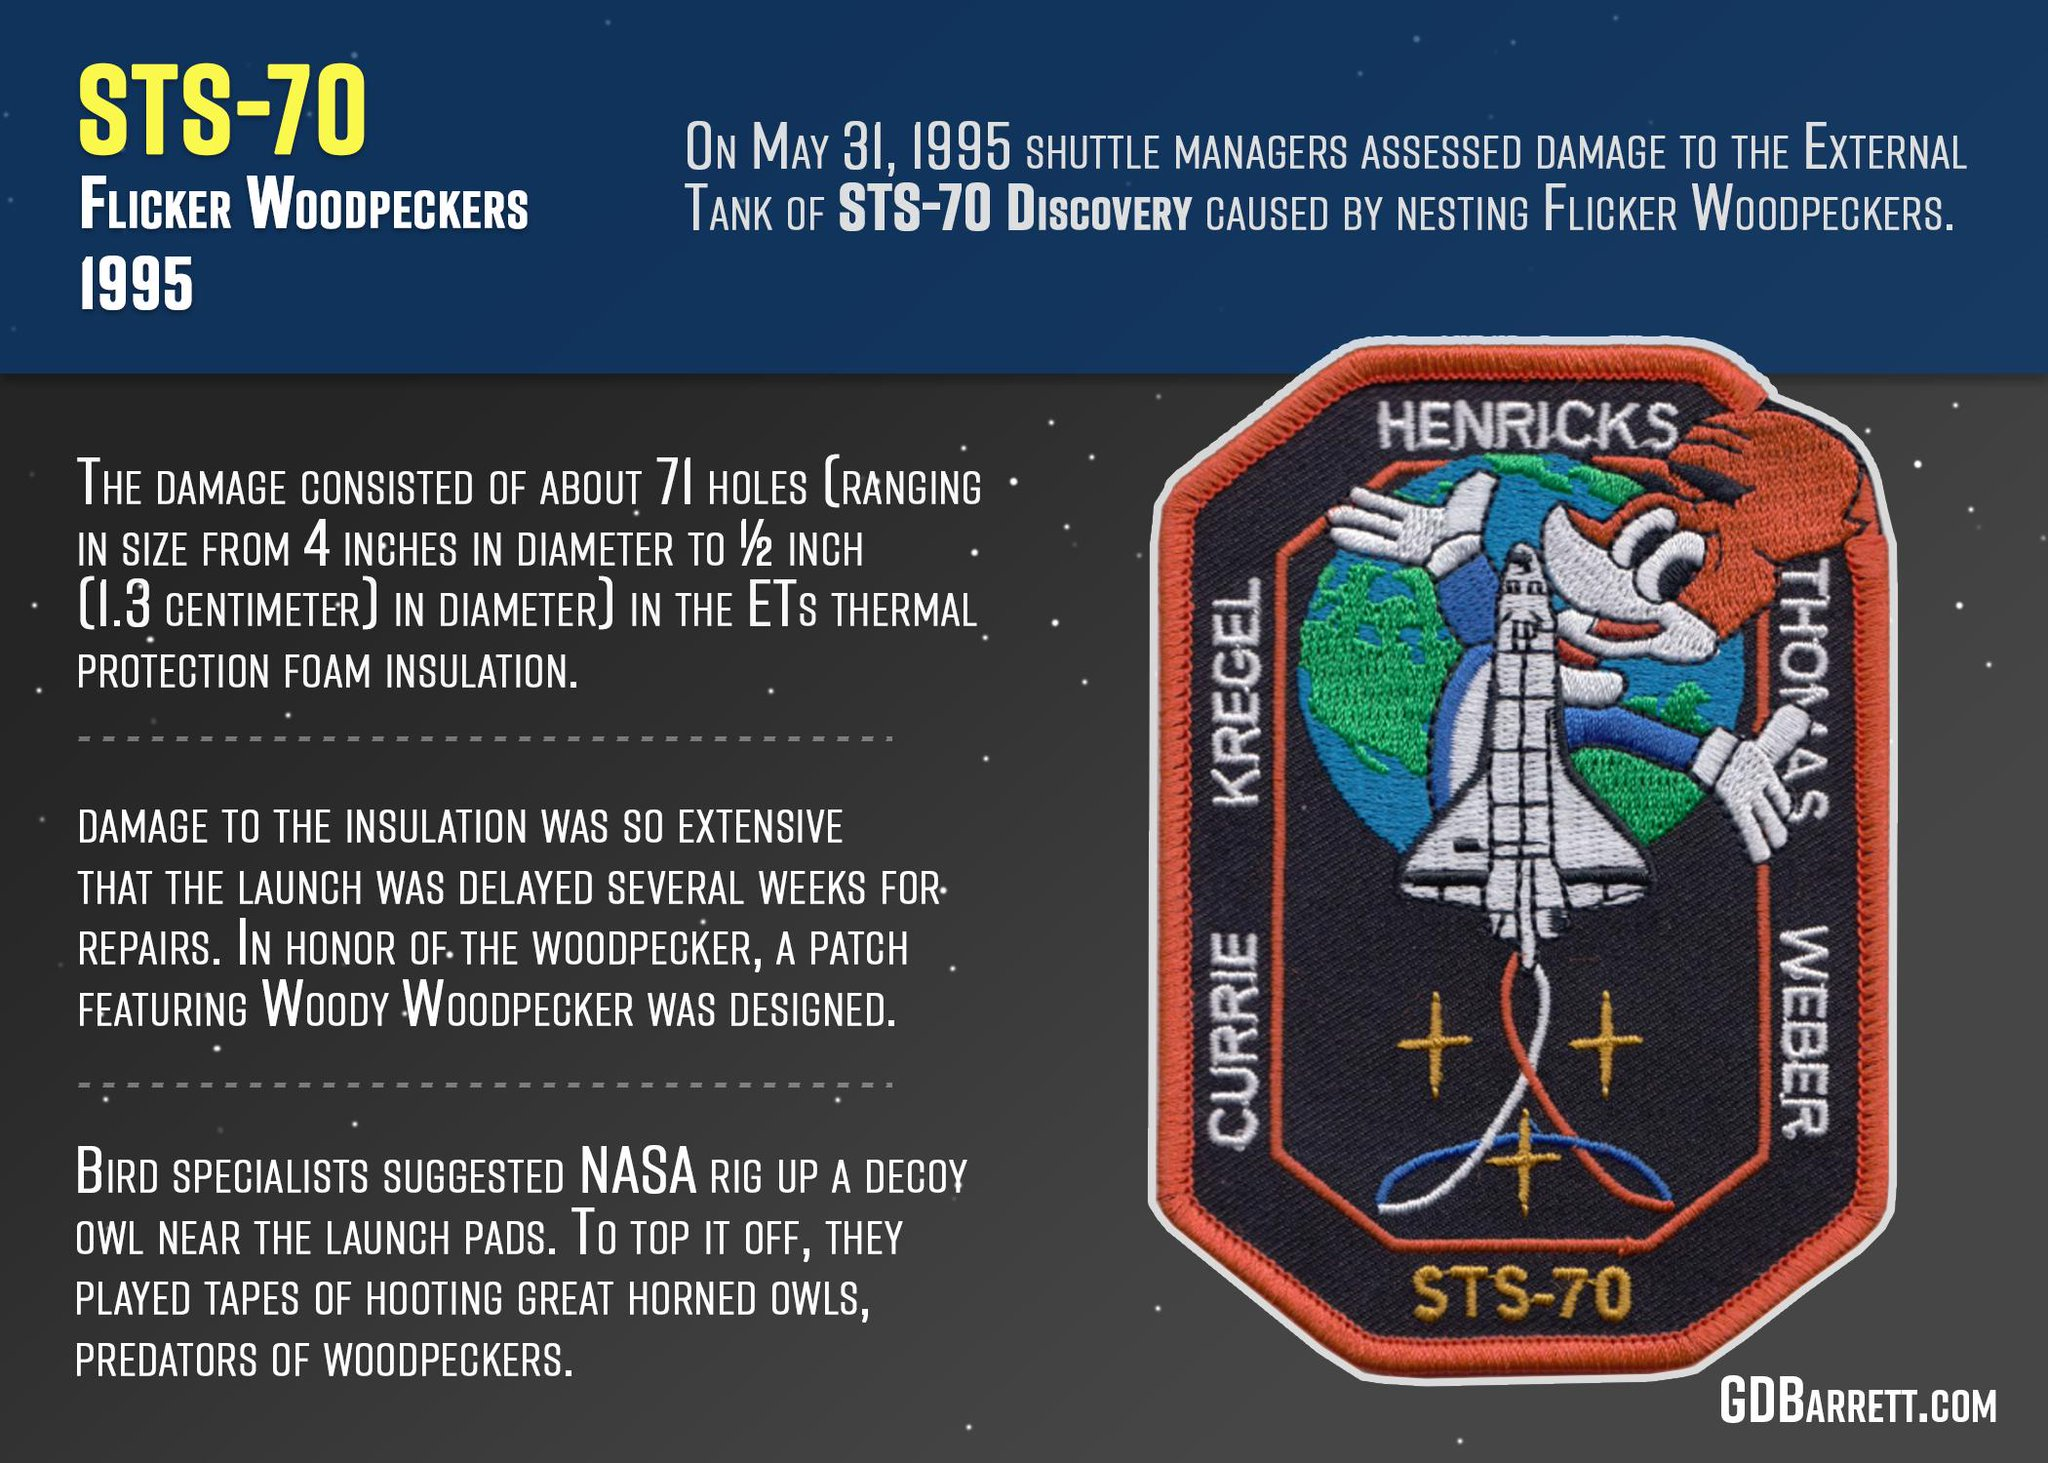 STS-70 Mission Patch - Woodpecker damage